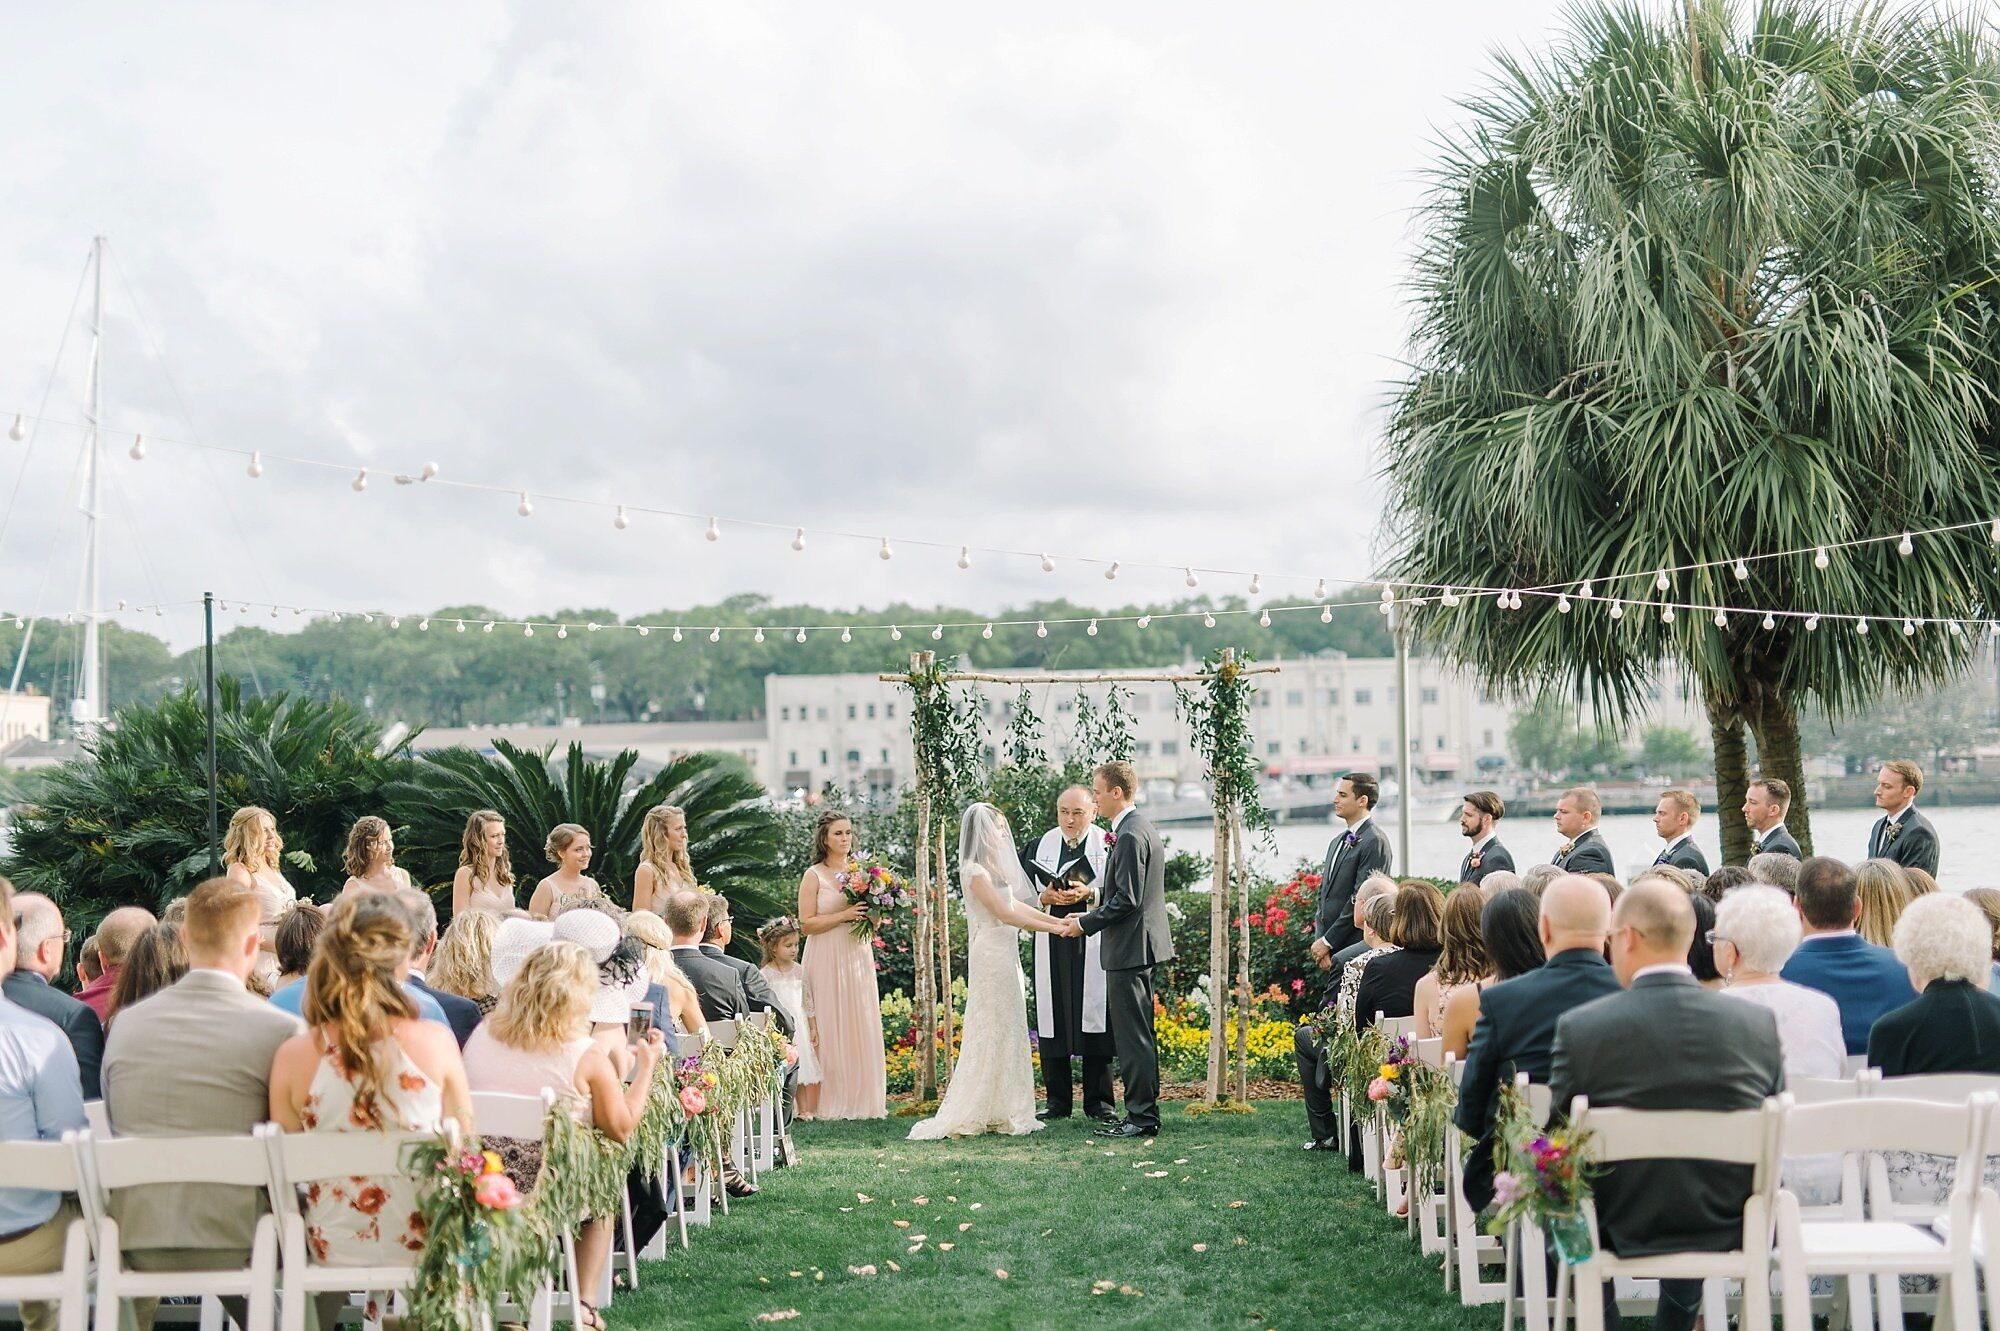 Wedding reception venues in savannah ga the knot the westin savannah harbor junglespirit Image collections